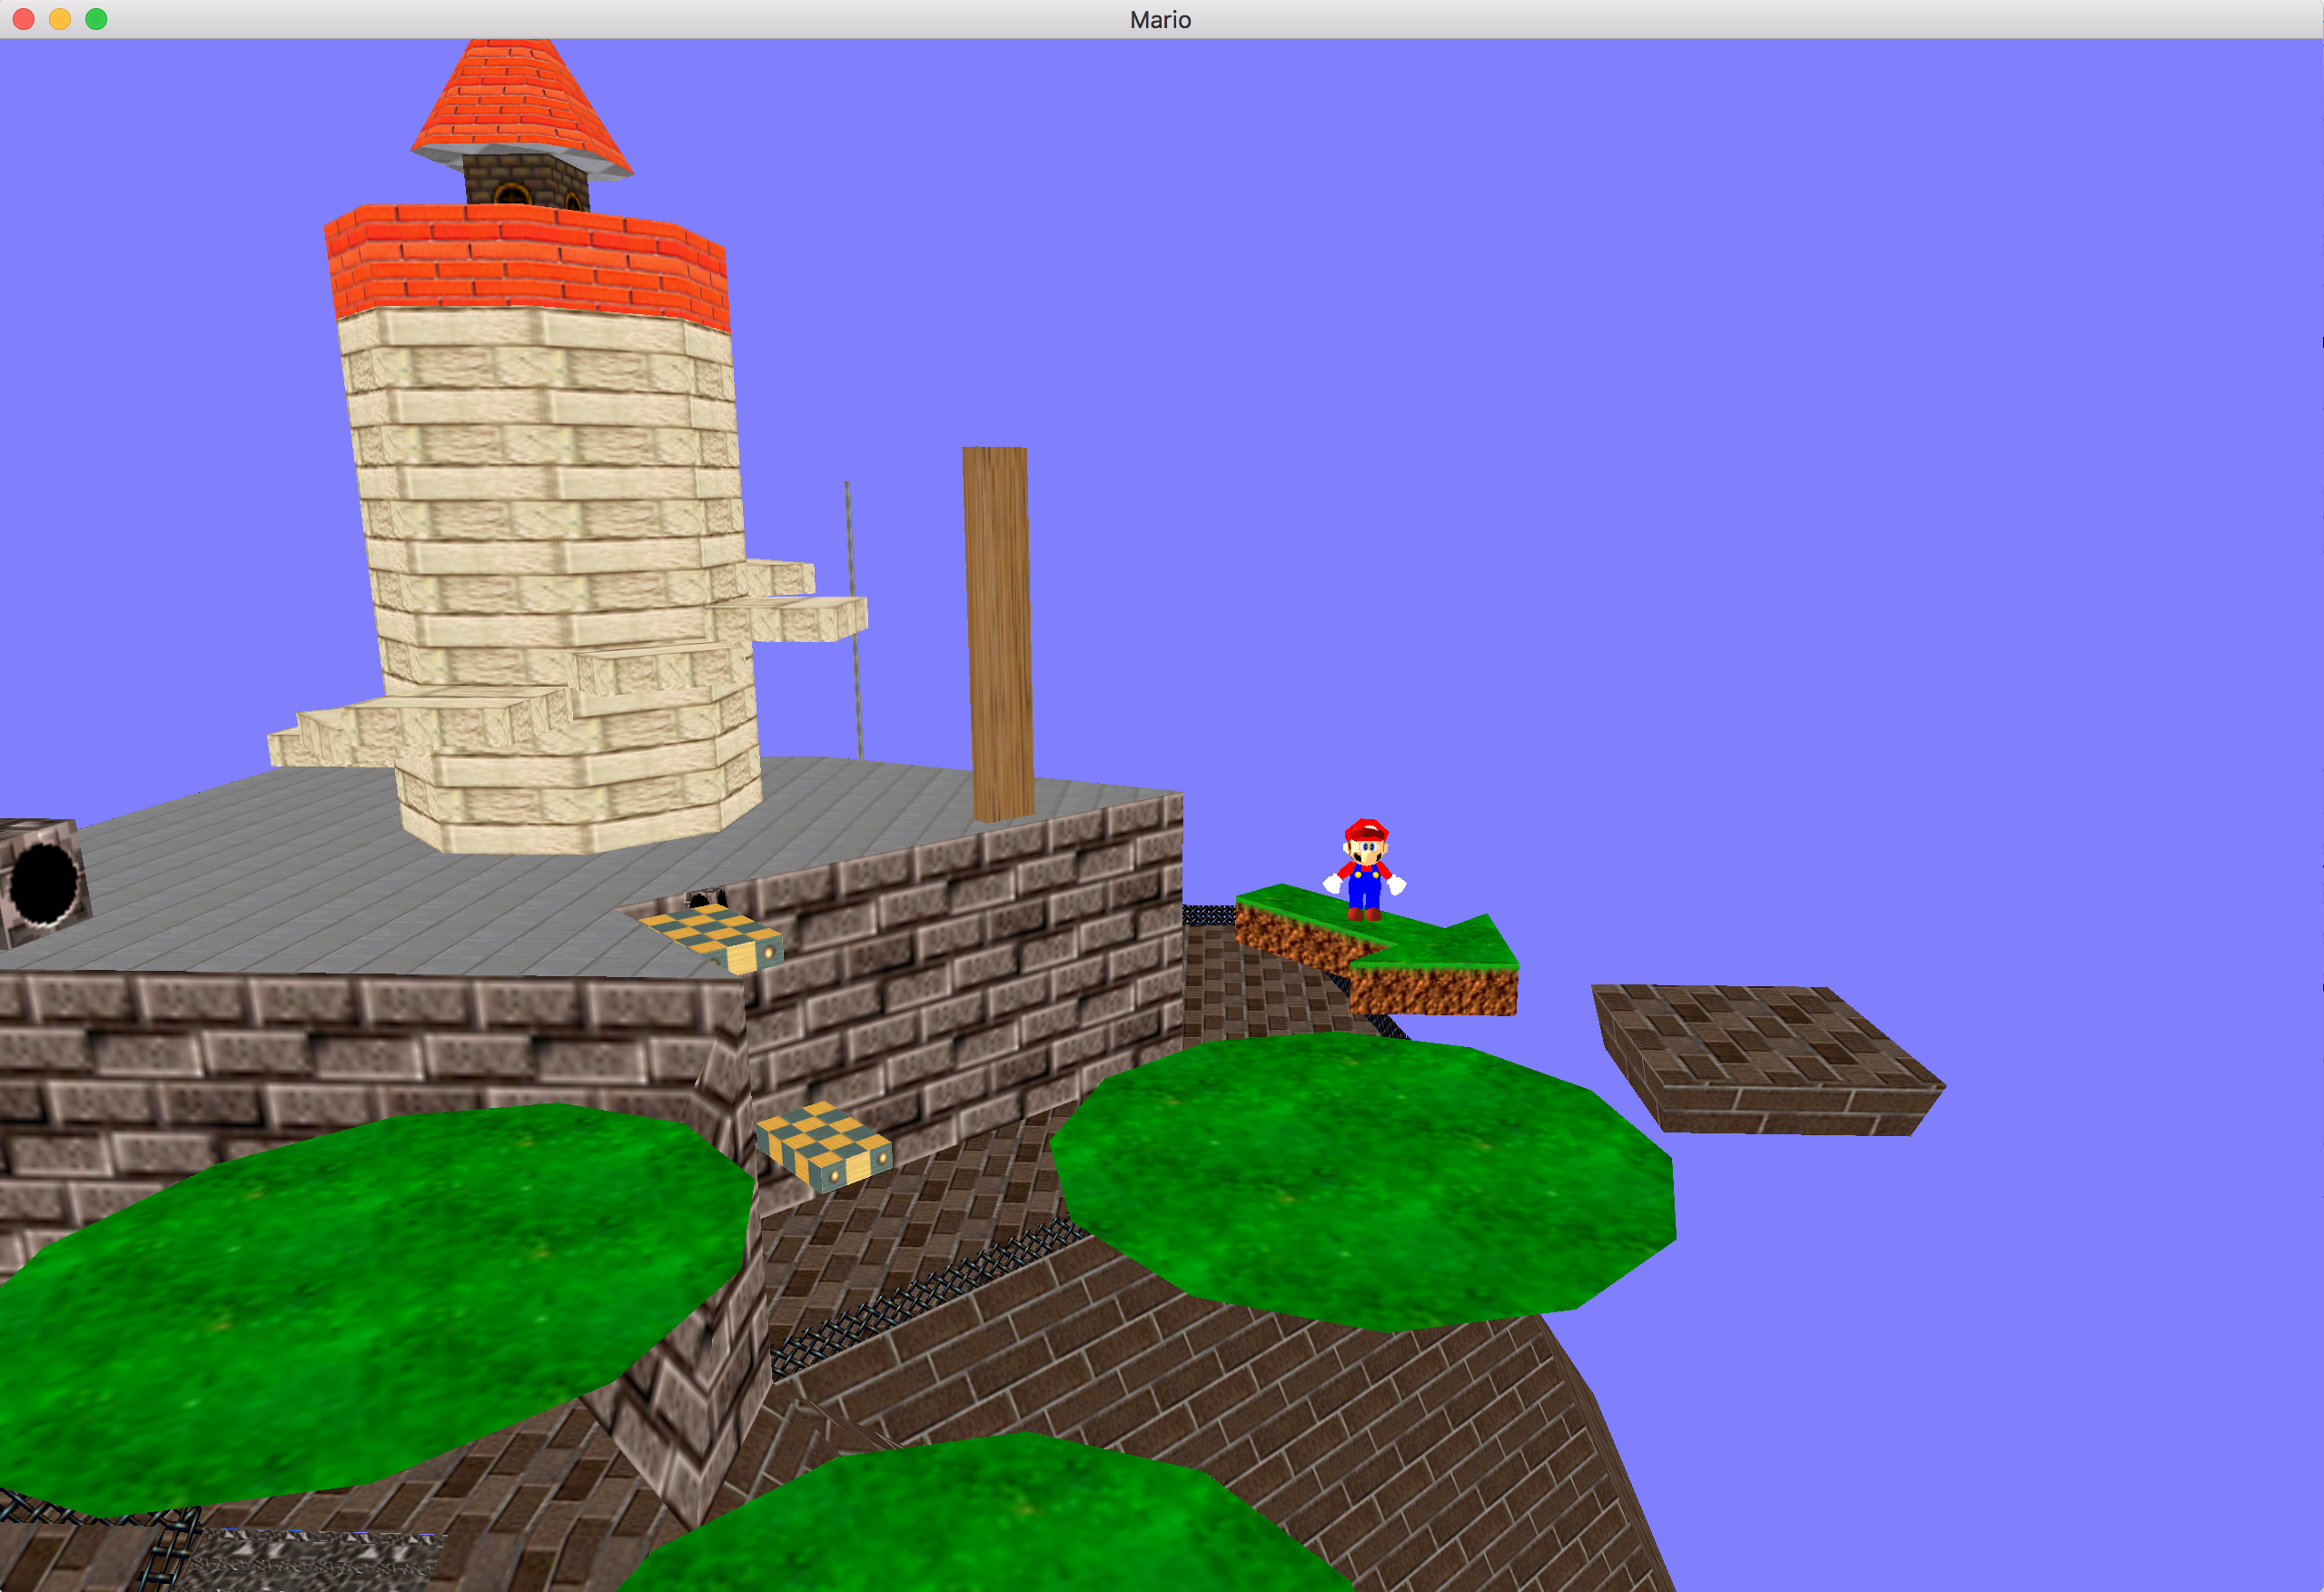 Super Mario World OpenGL Project